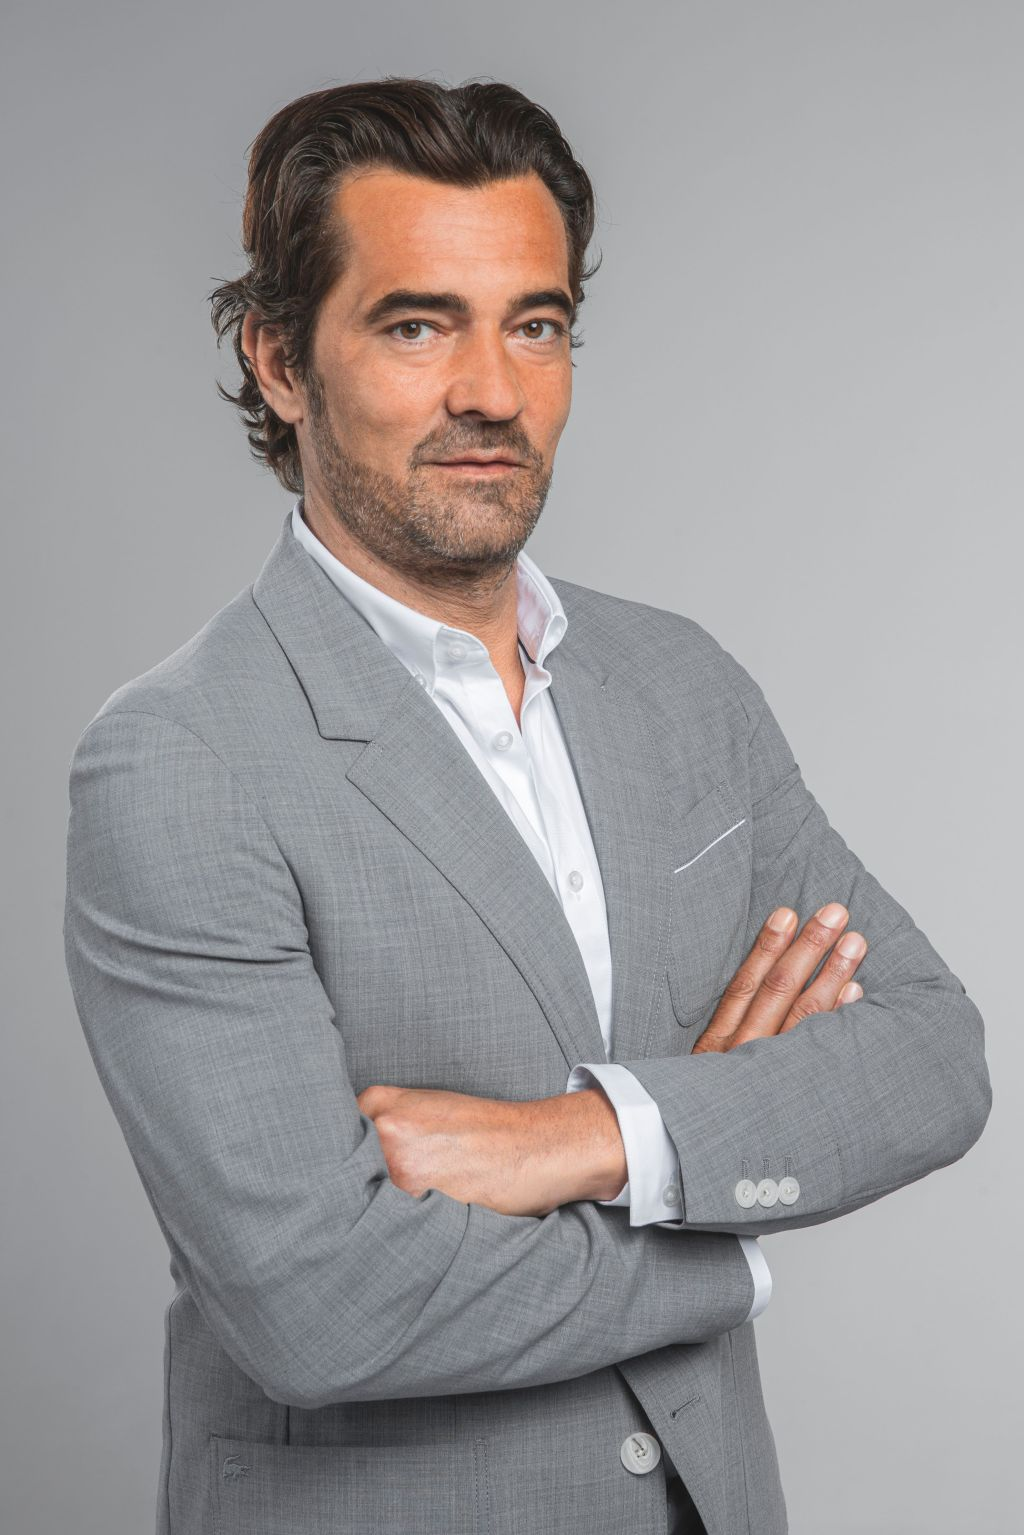 Thierry Guibert has been named CEO of Maus Freres